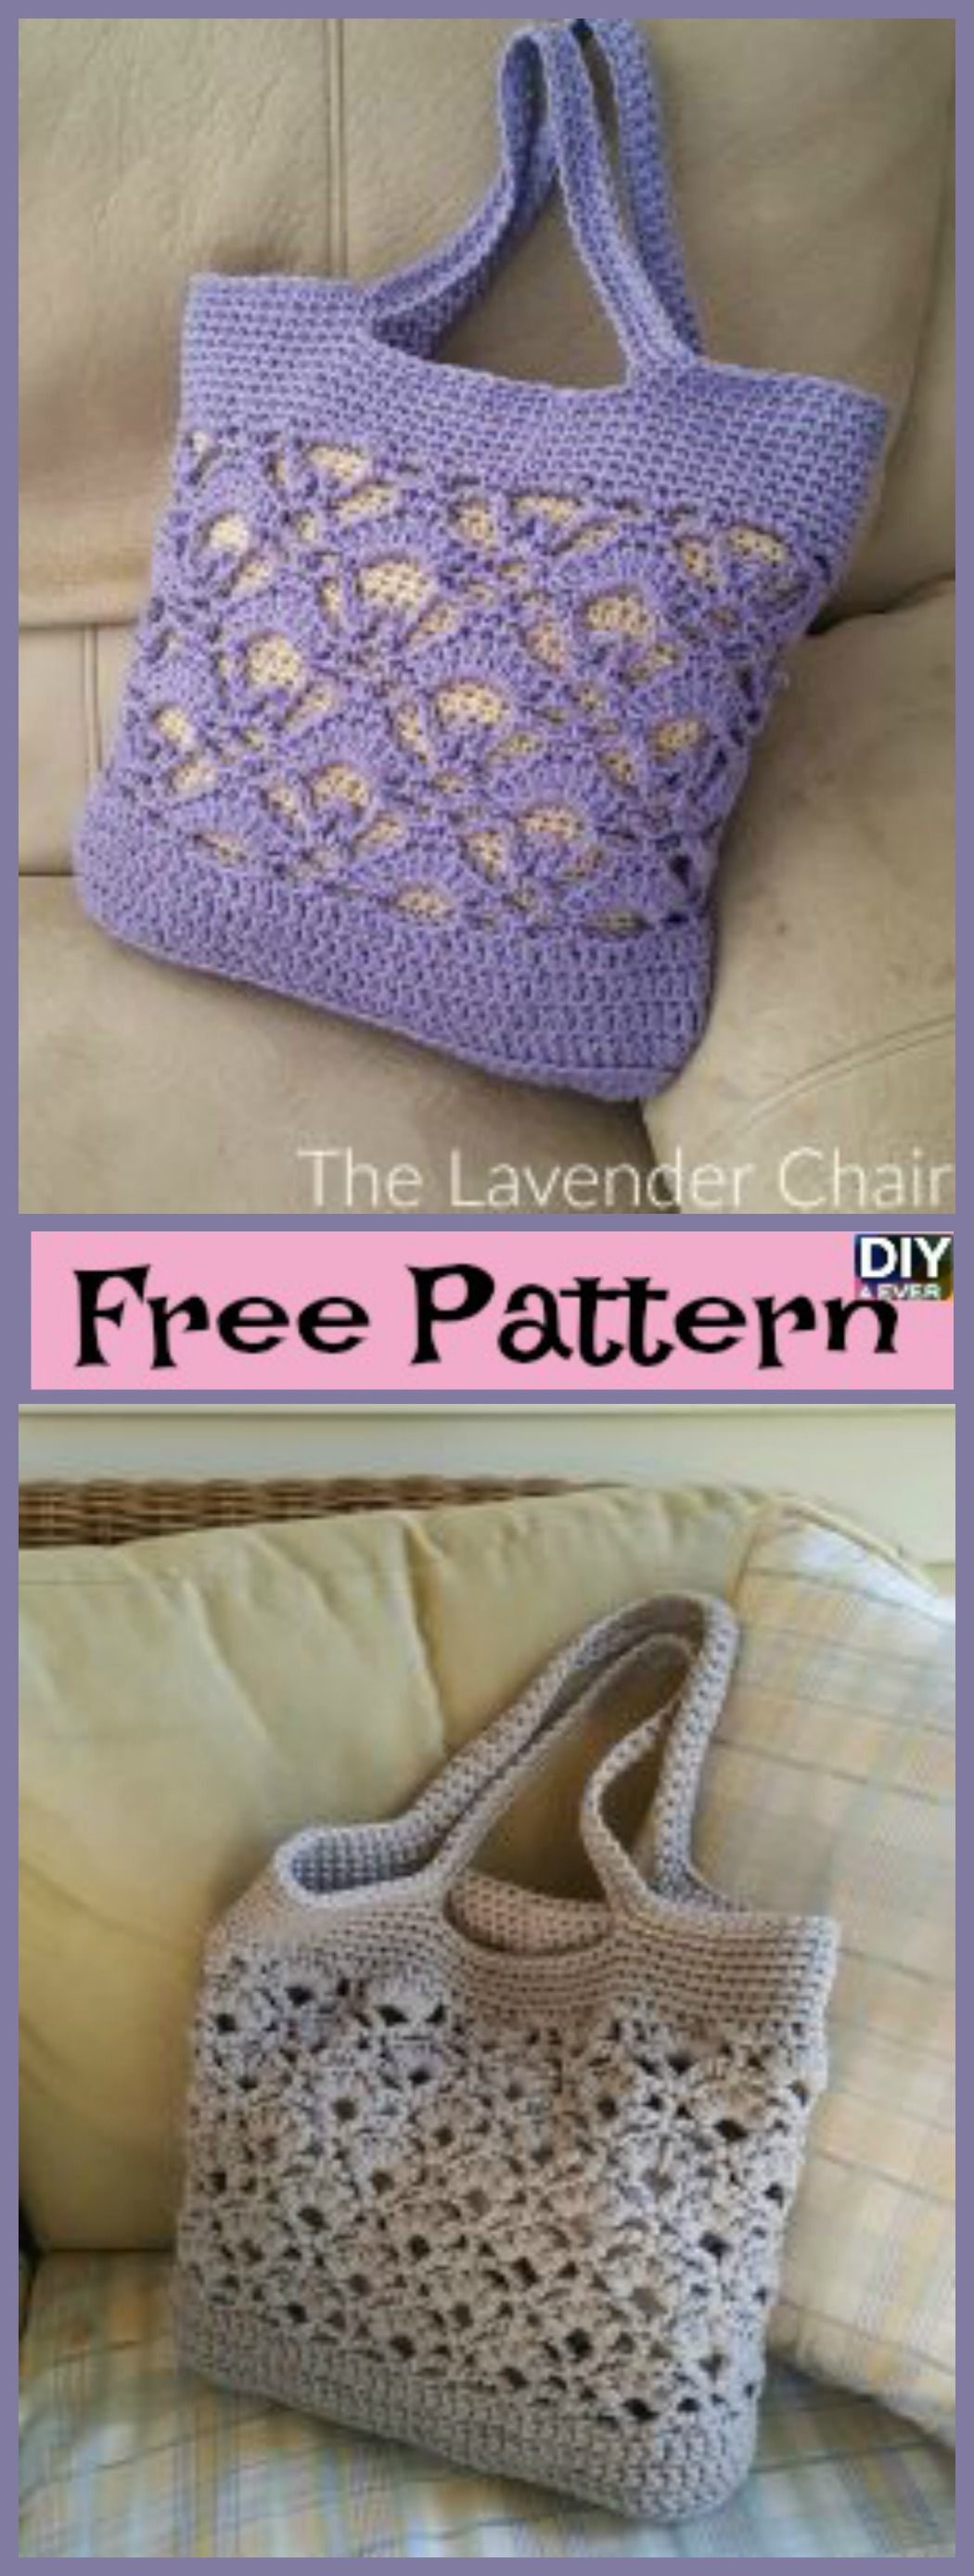 DIY4ever- Crochet Tote Bags - Free Pattern